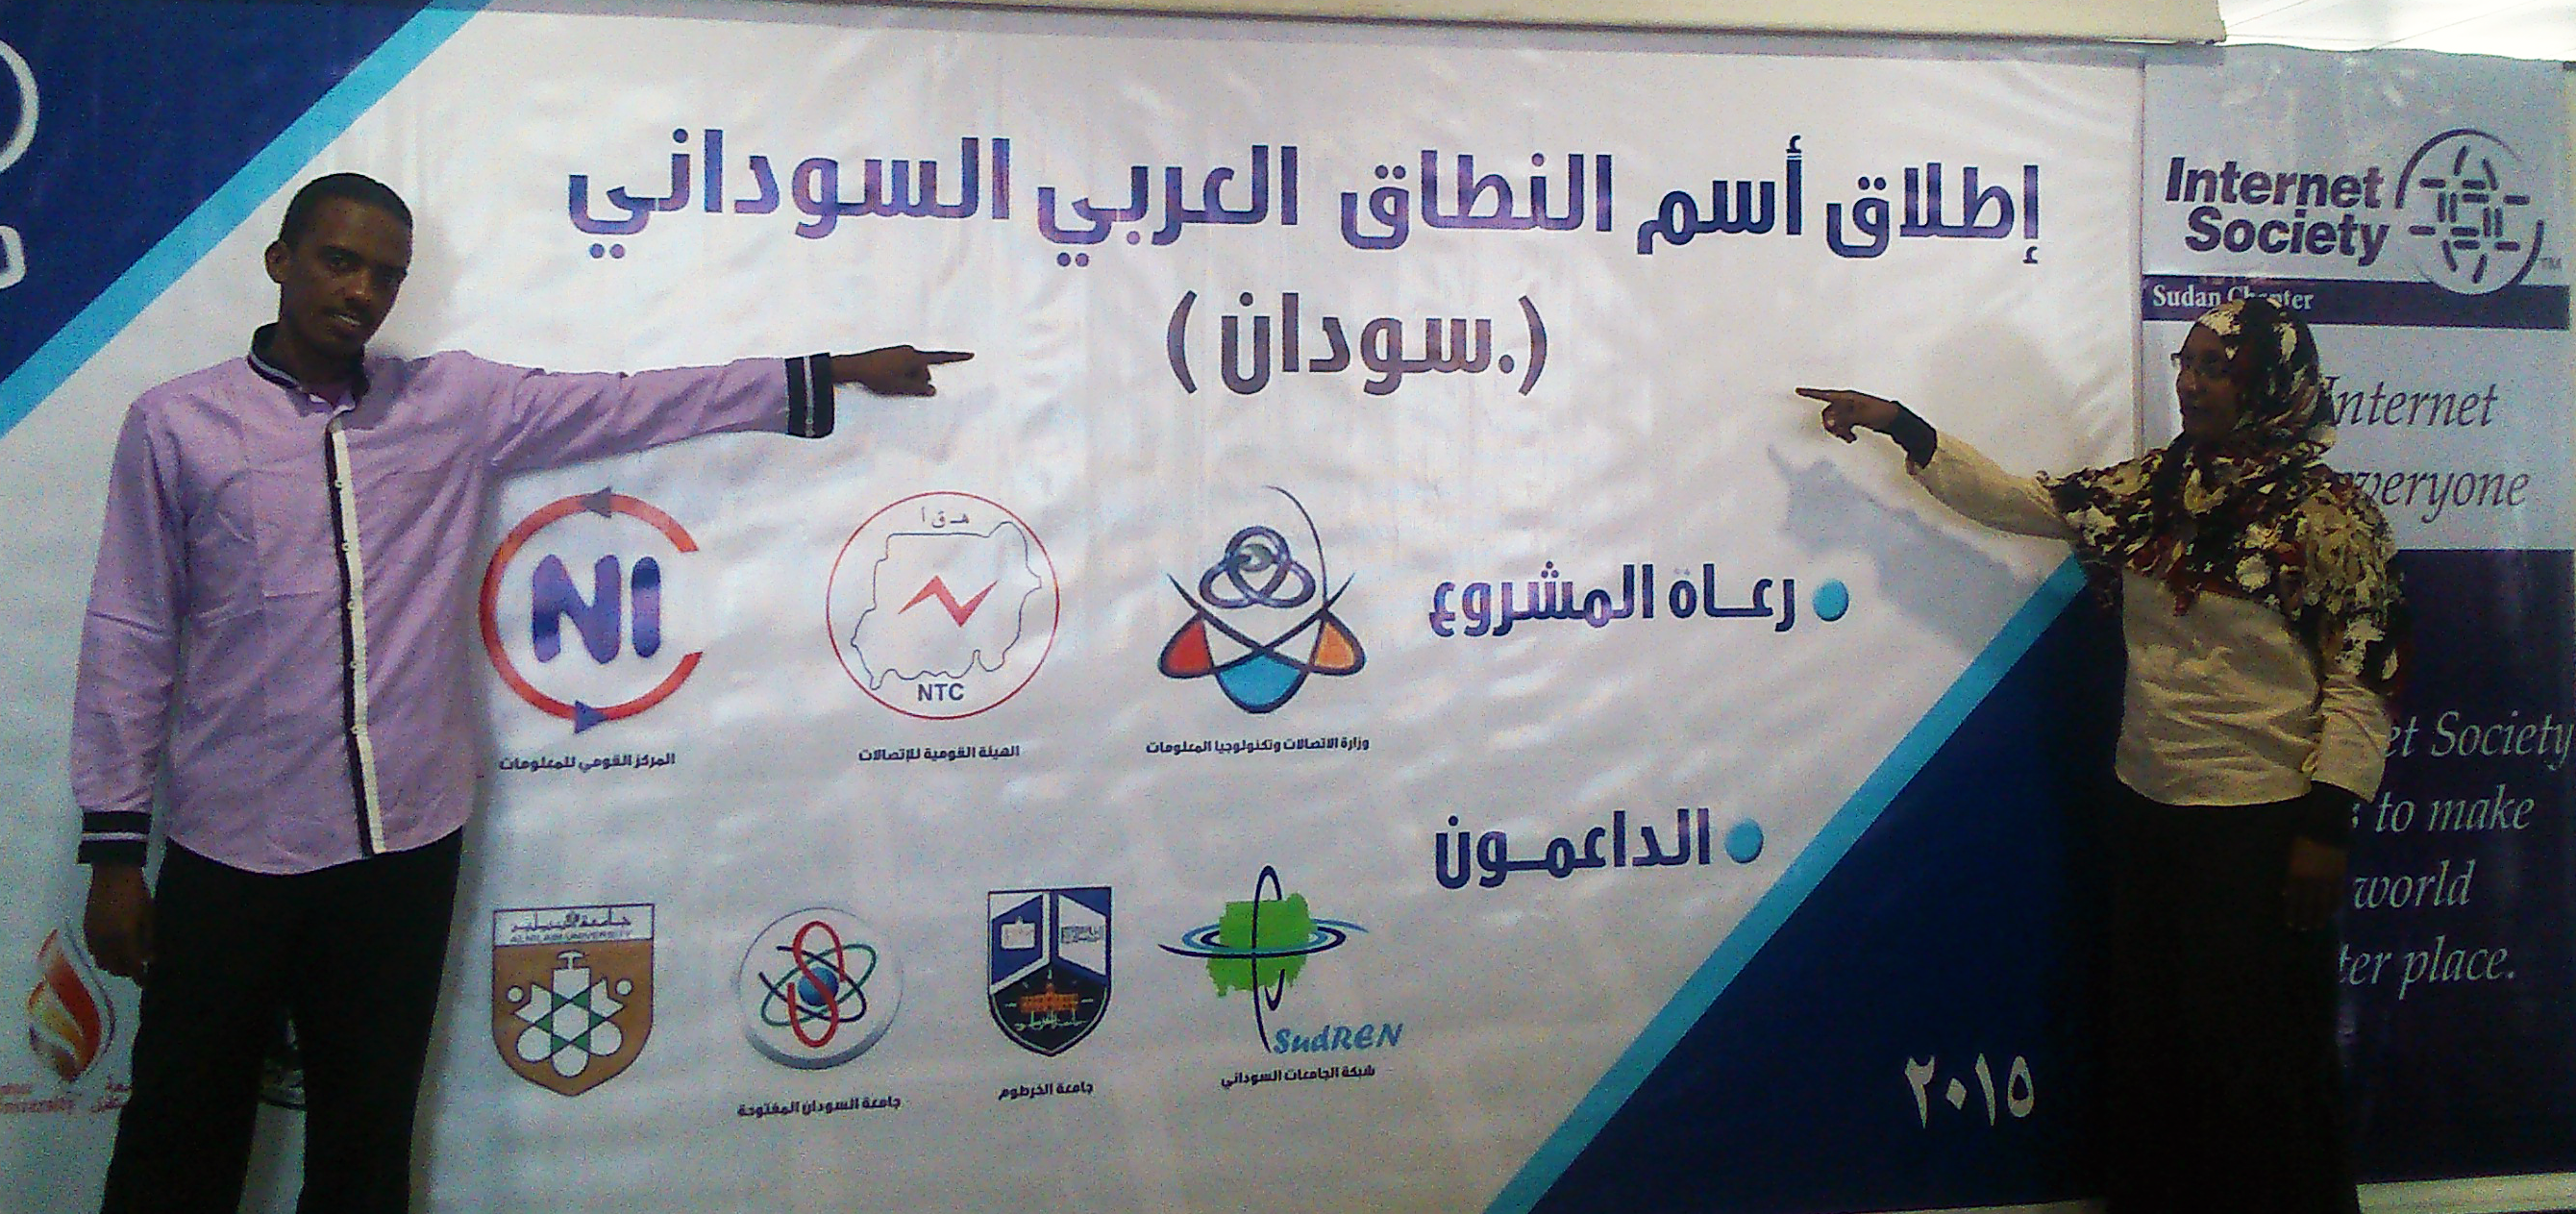 Sudanese new IDN ccTLD domain in Arabic (سودان.) launched by the Internet Society Sudan Chapter Thumbnail